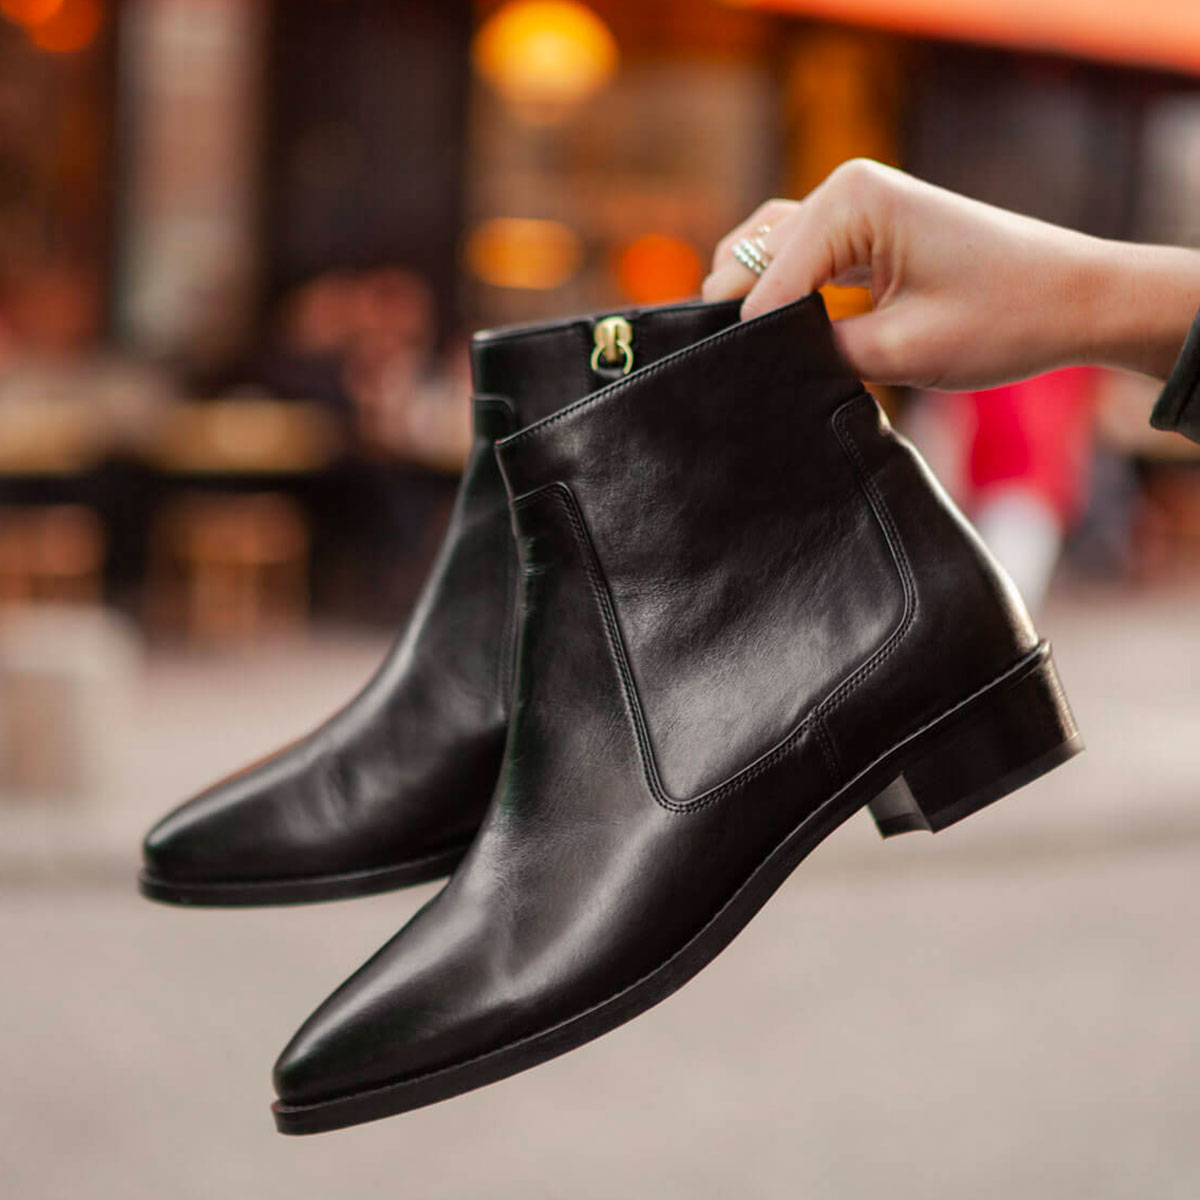 Bottines n°67 noir